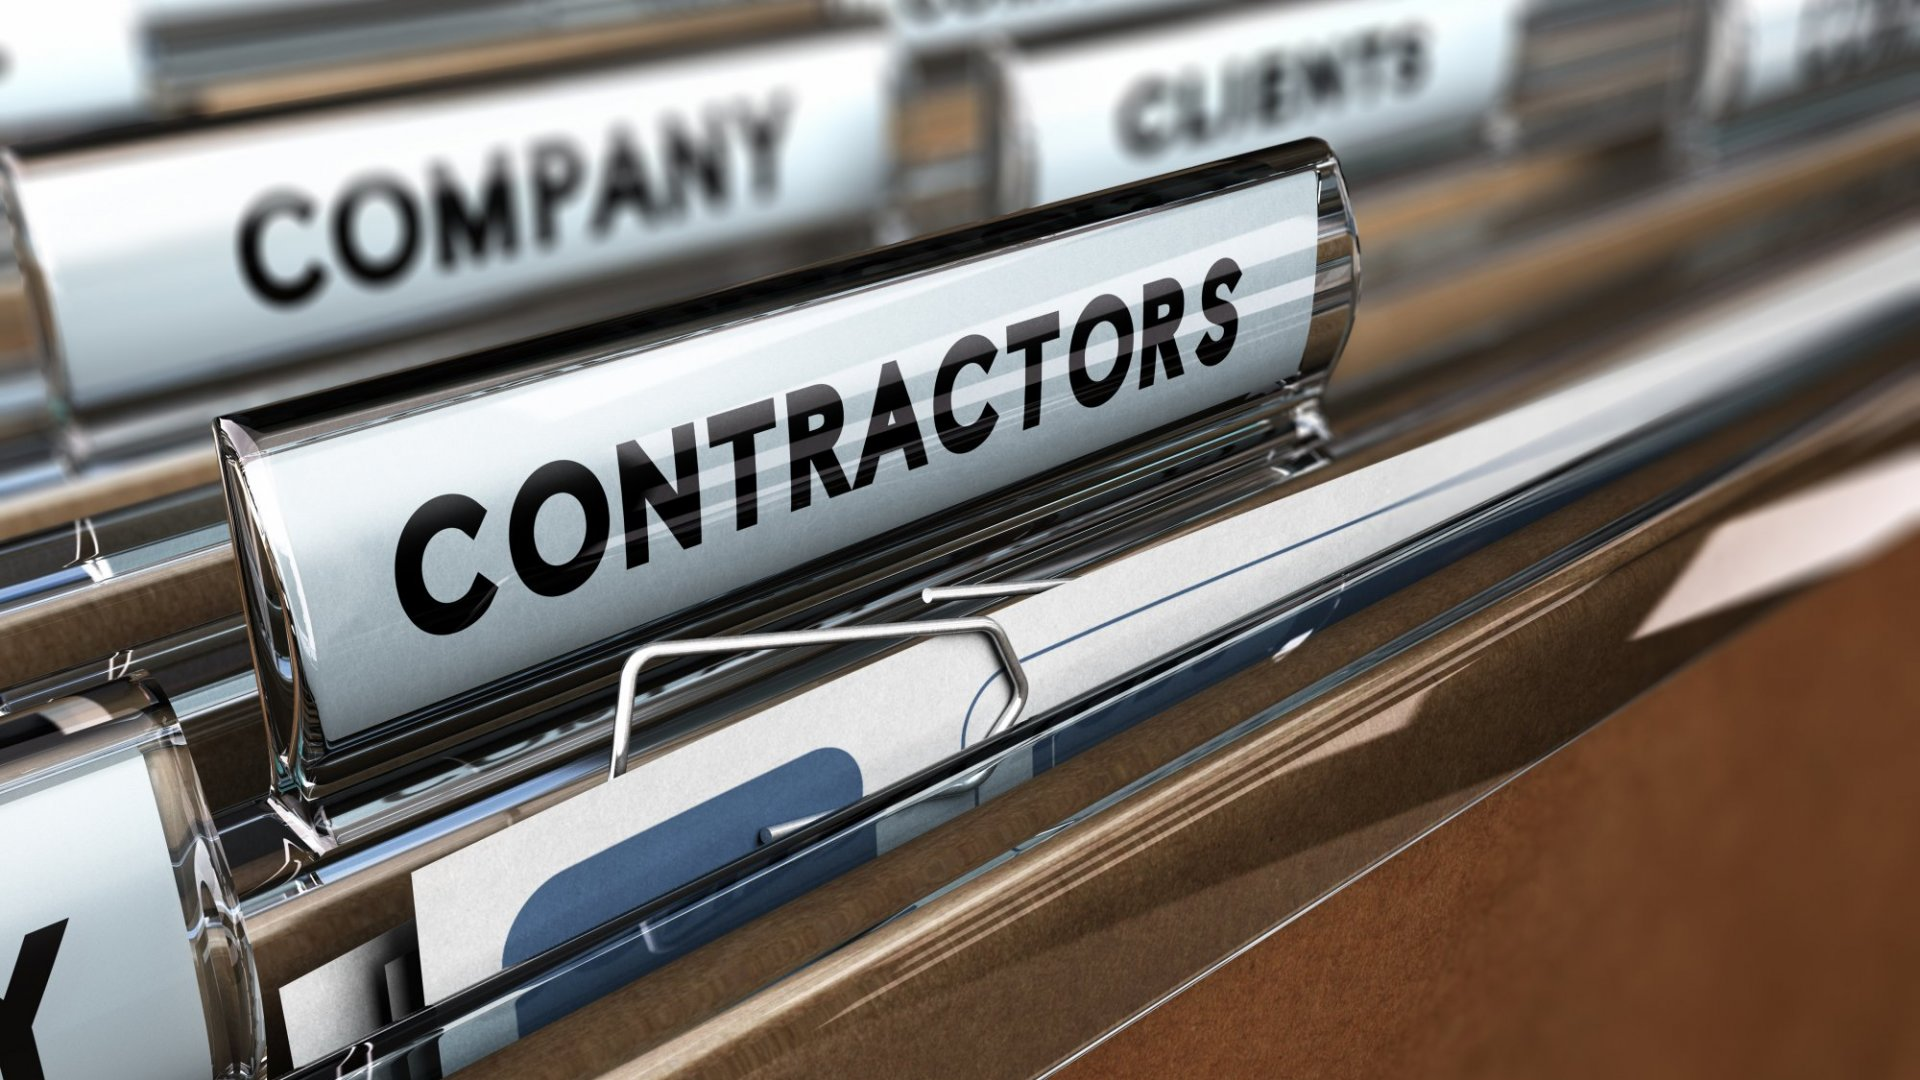 Here's What No One Tells You About Being an Independent Contractor